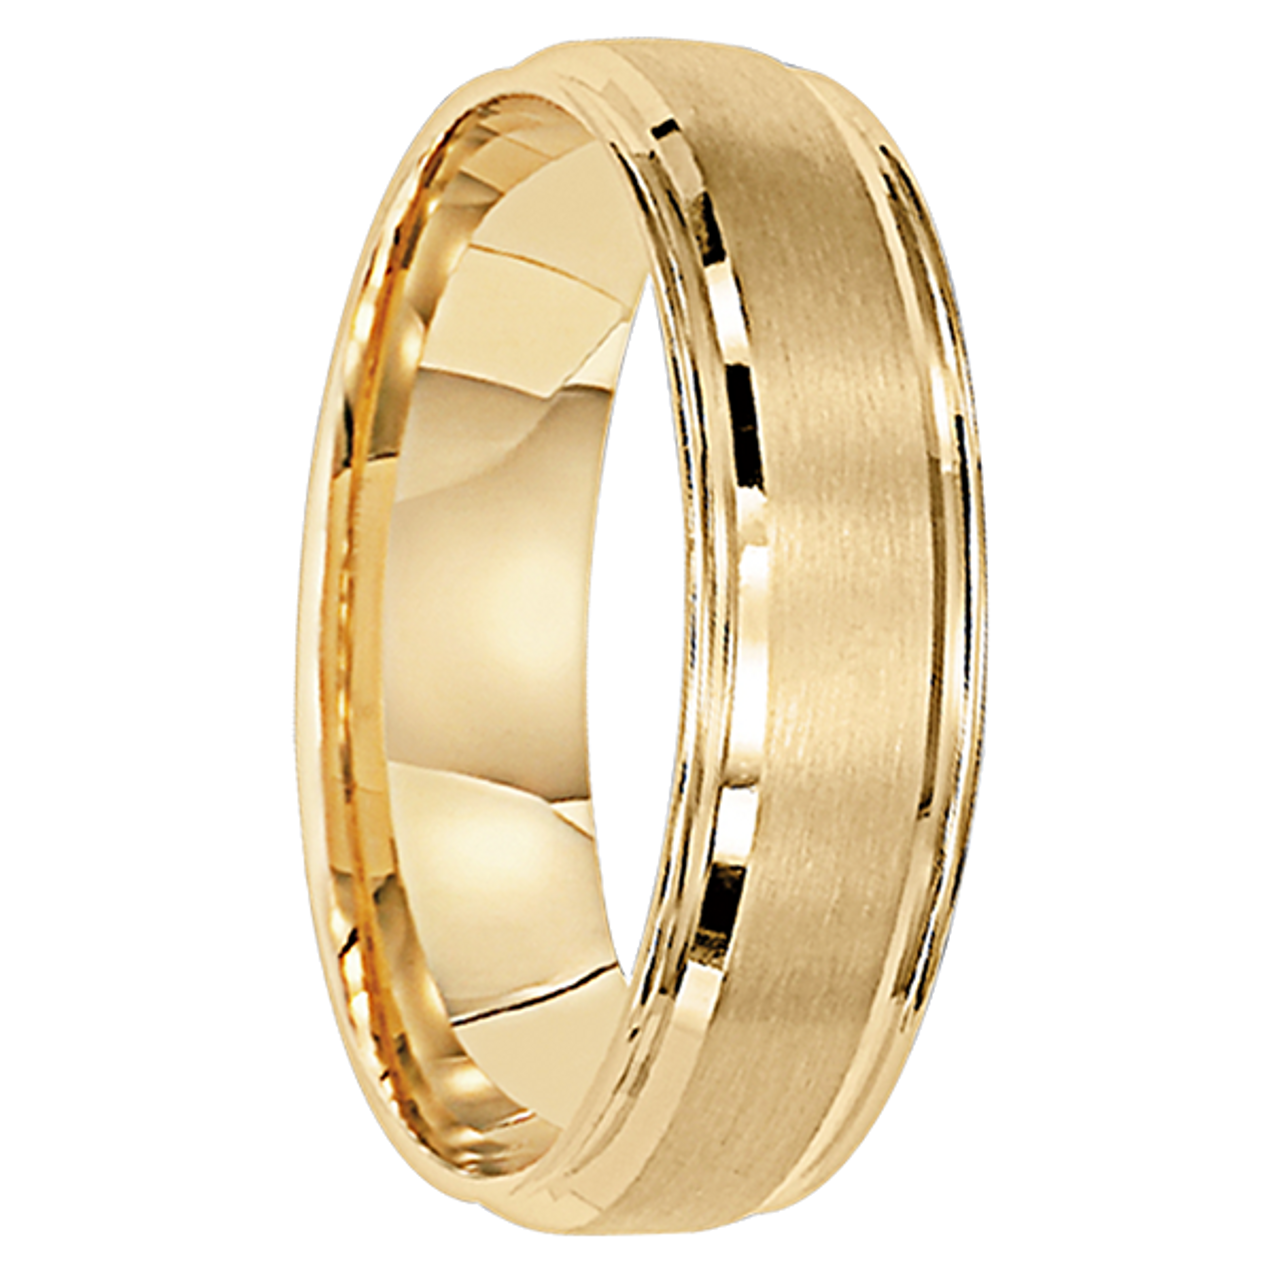 6 Mm Unique Mens Wedding Bands In 10kt Gold Luxembourg 10